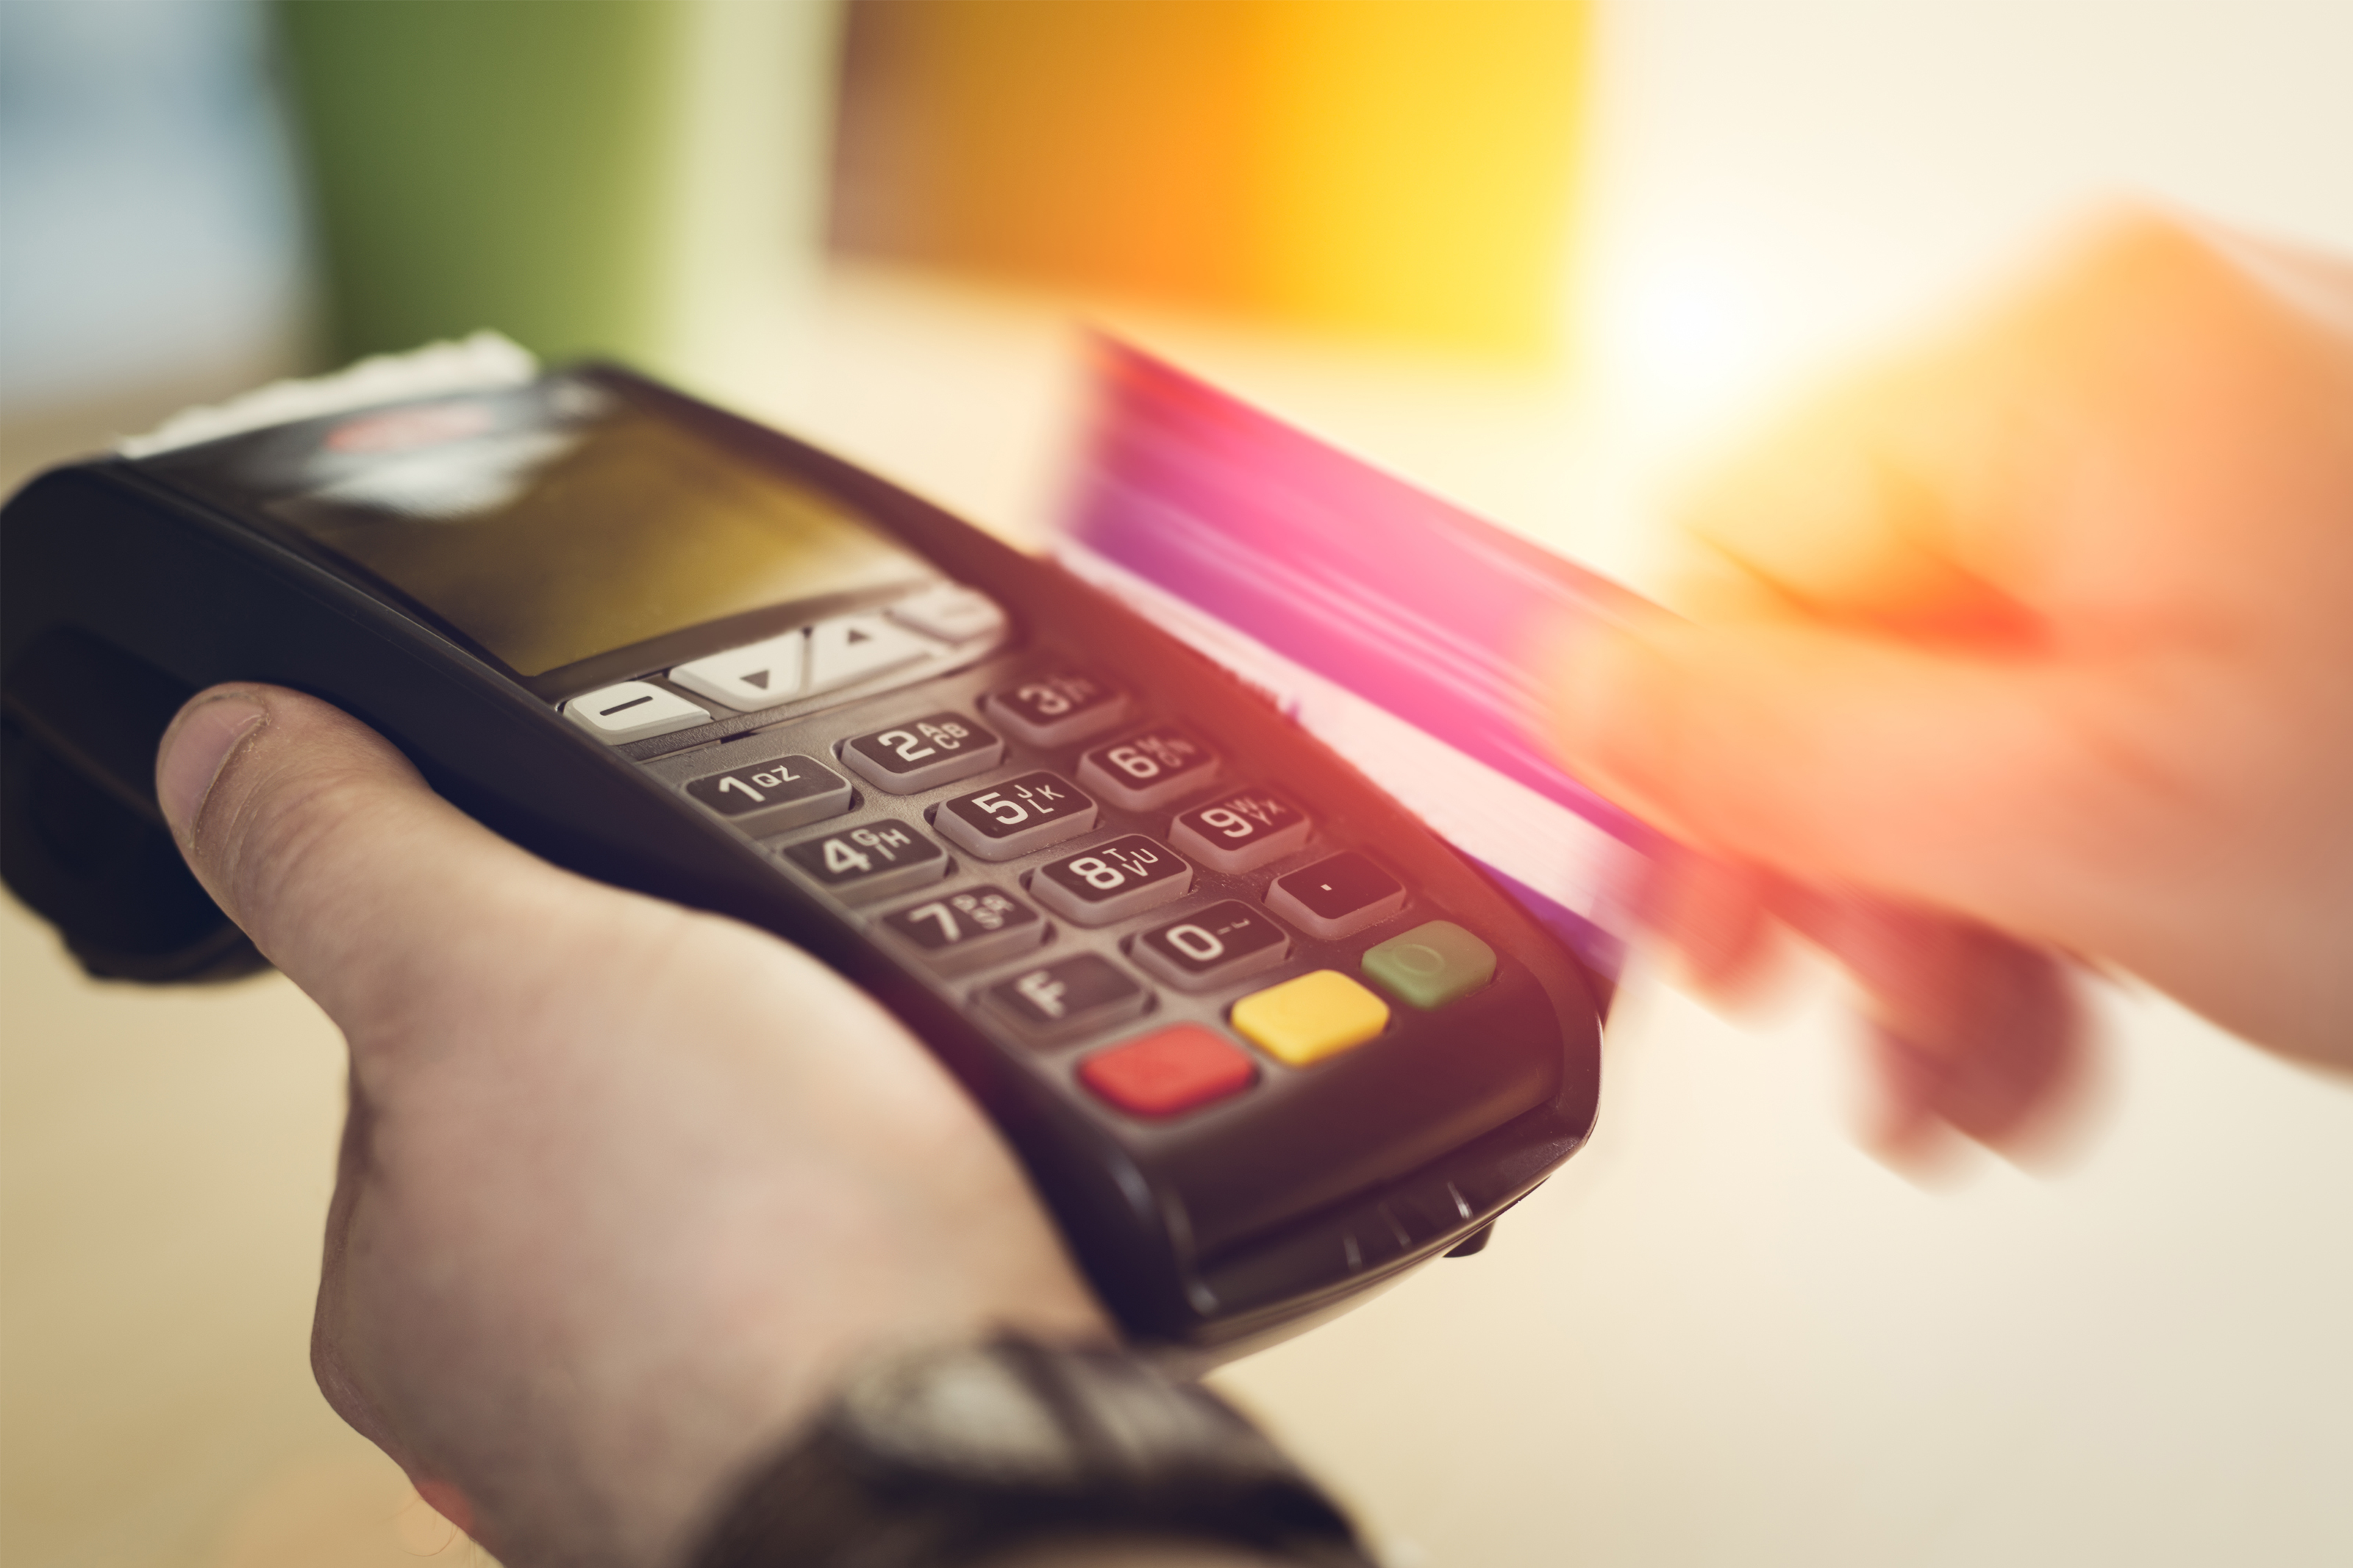 Paying with a credit card at a store